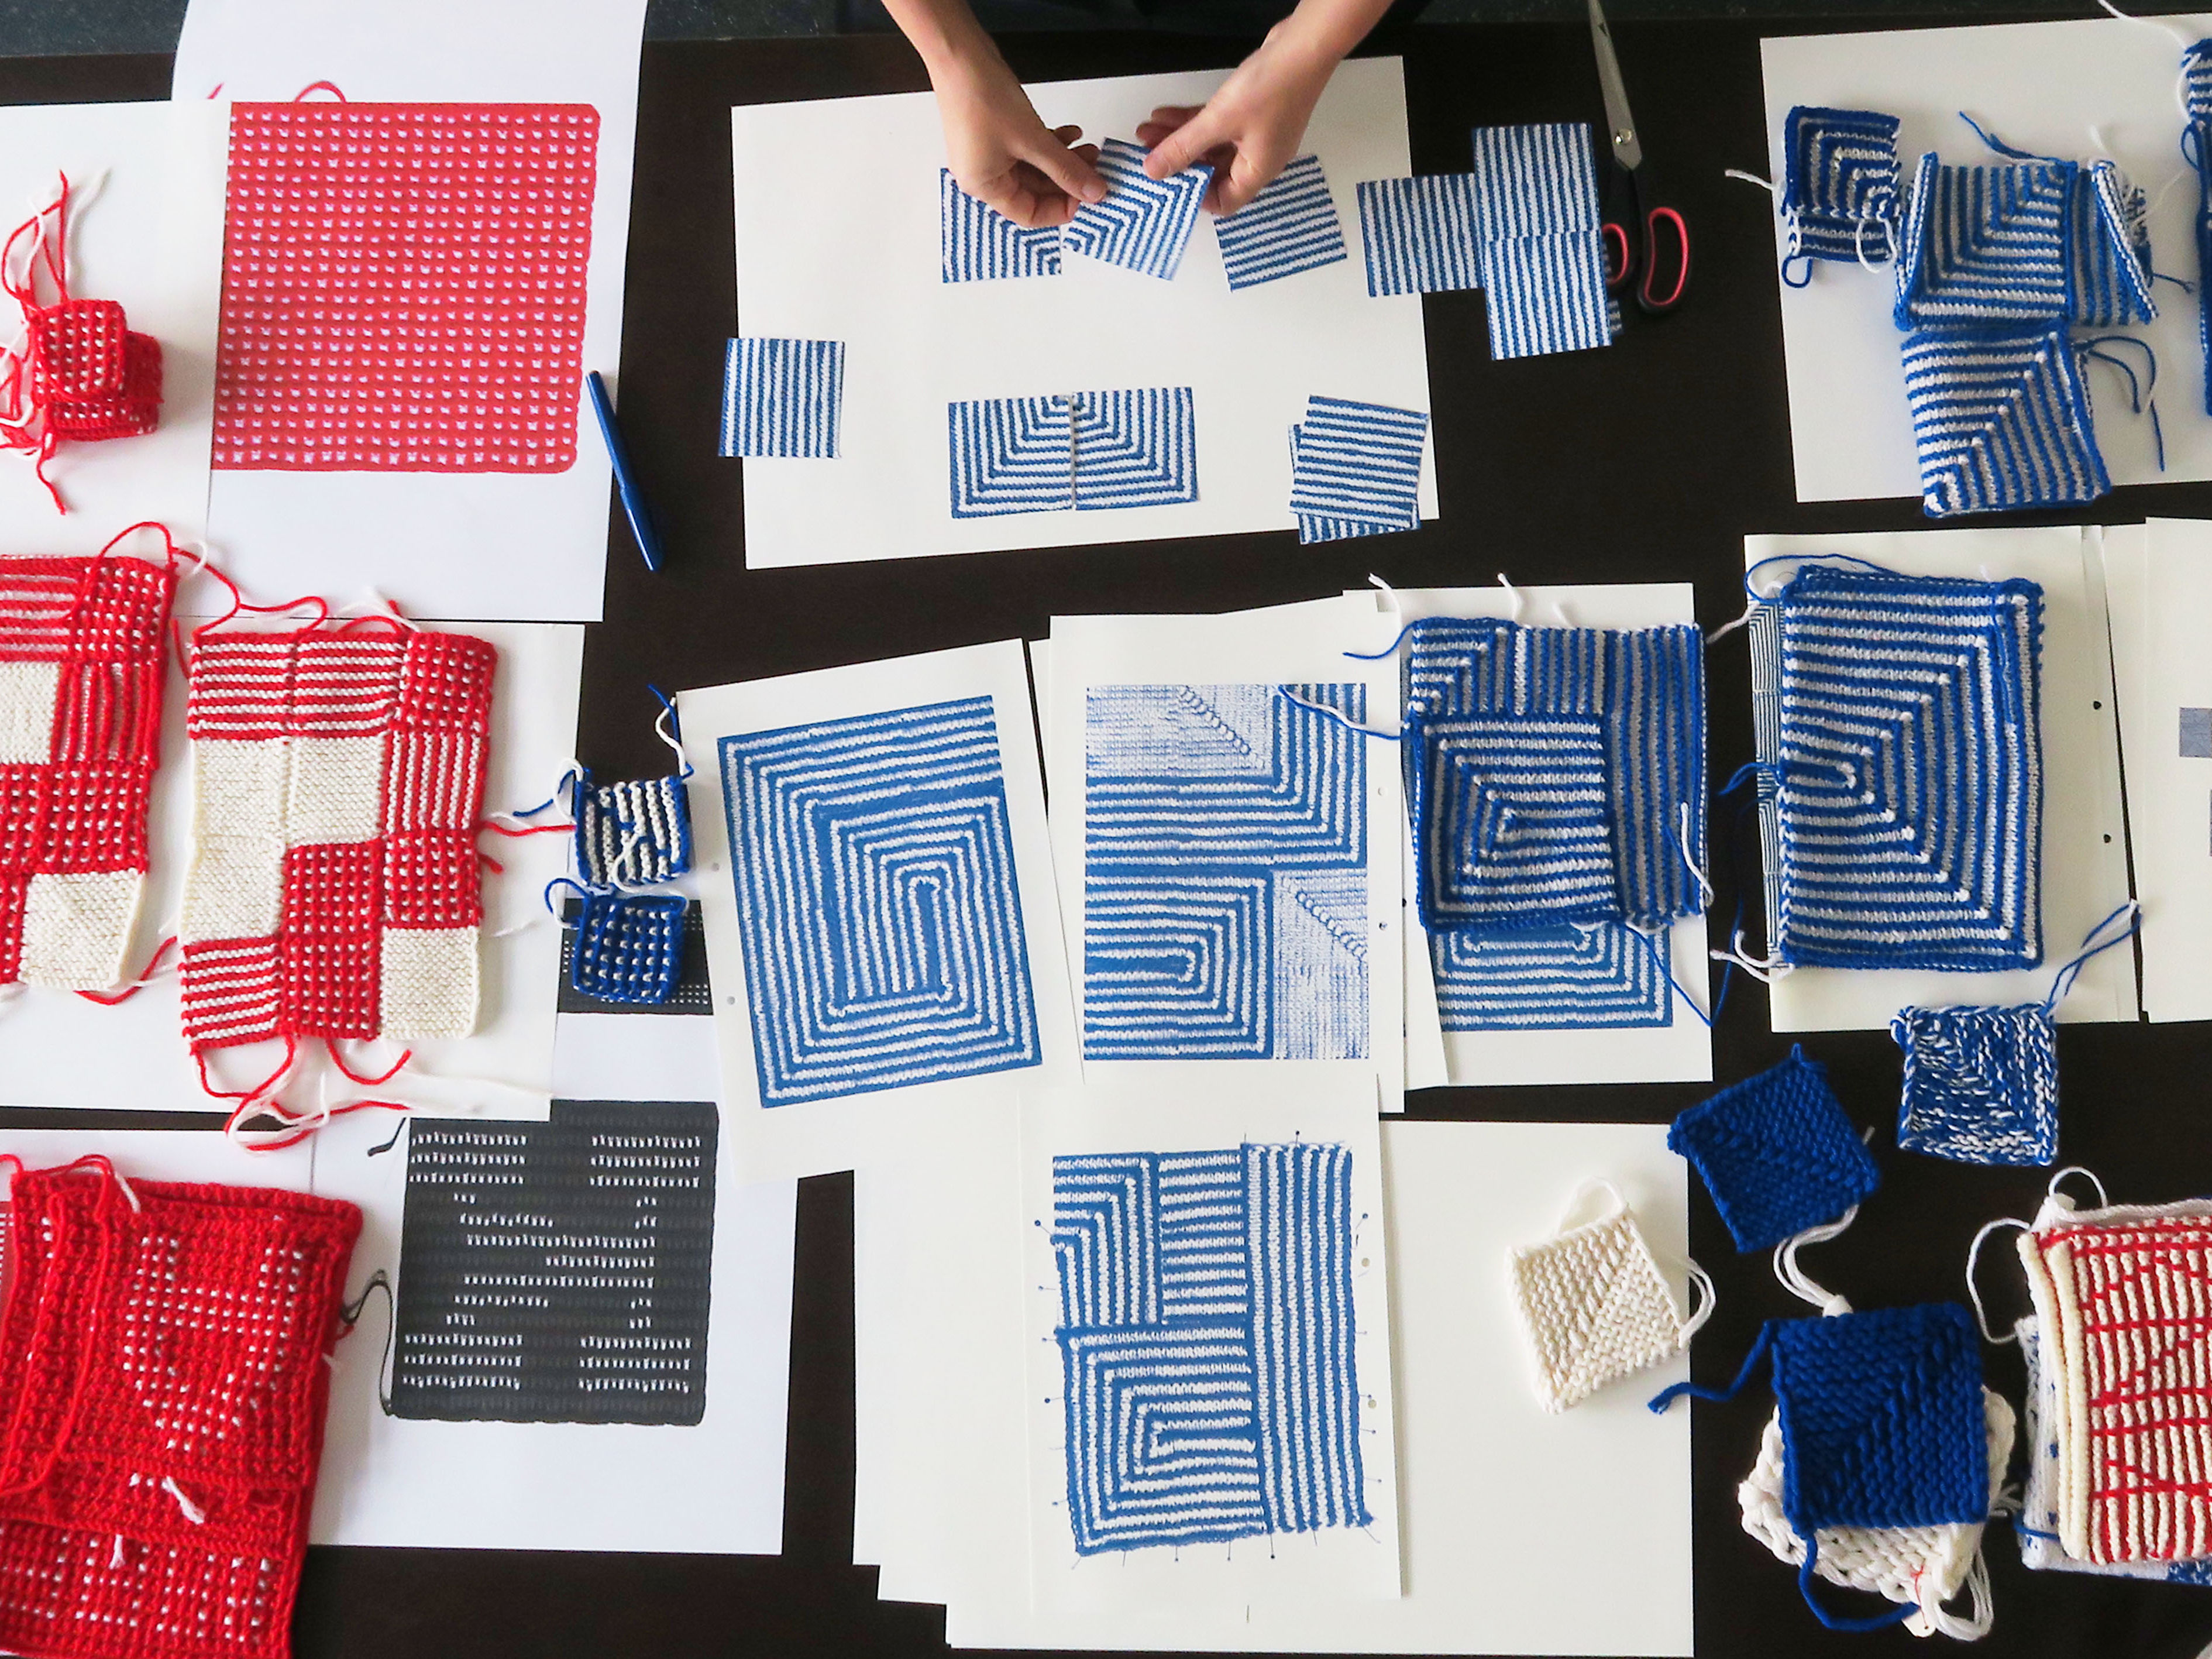 Workshop für alle: Typografisches Stricken mit Patches